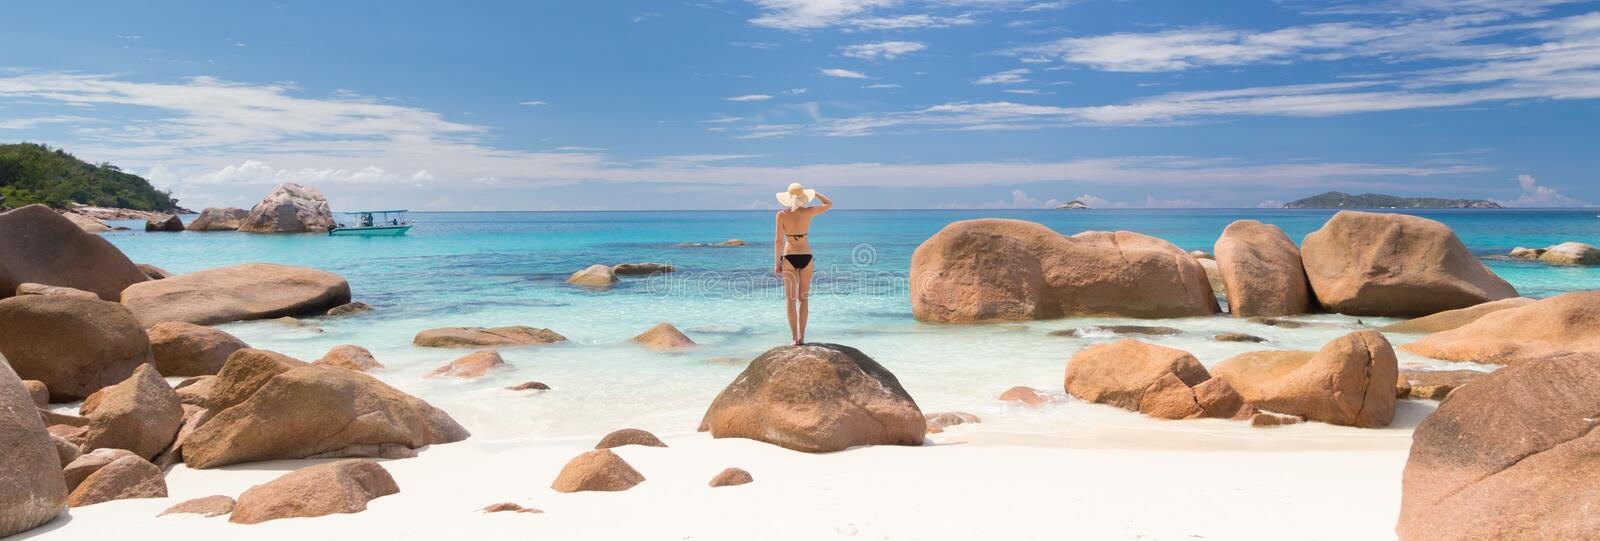 Woman enjoying Anse Lazio picture perfect beach on Praslin Island, Seychelles. royalty free stock images